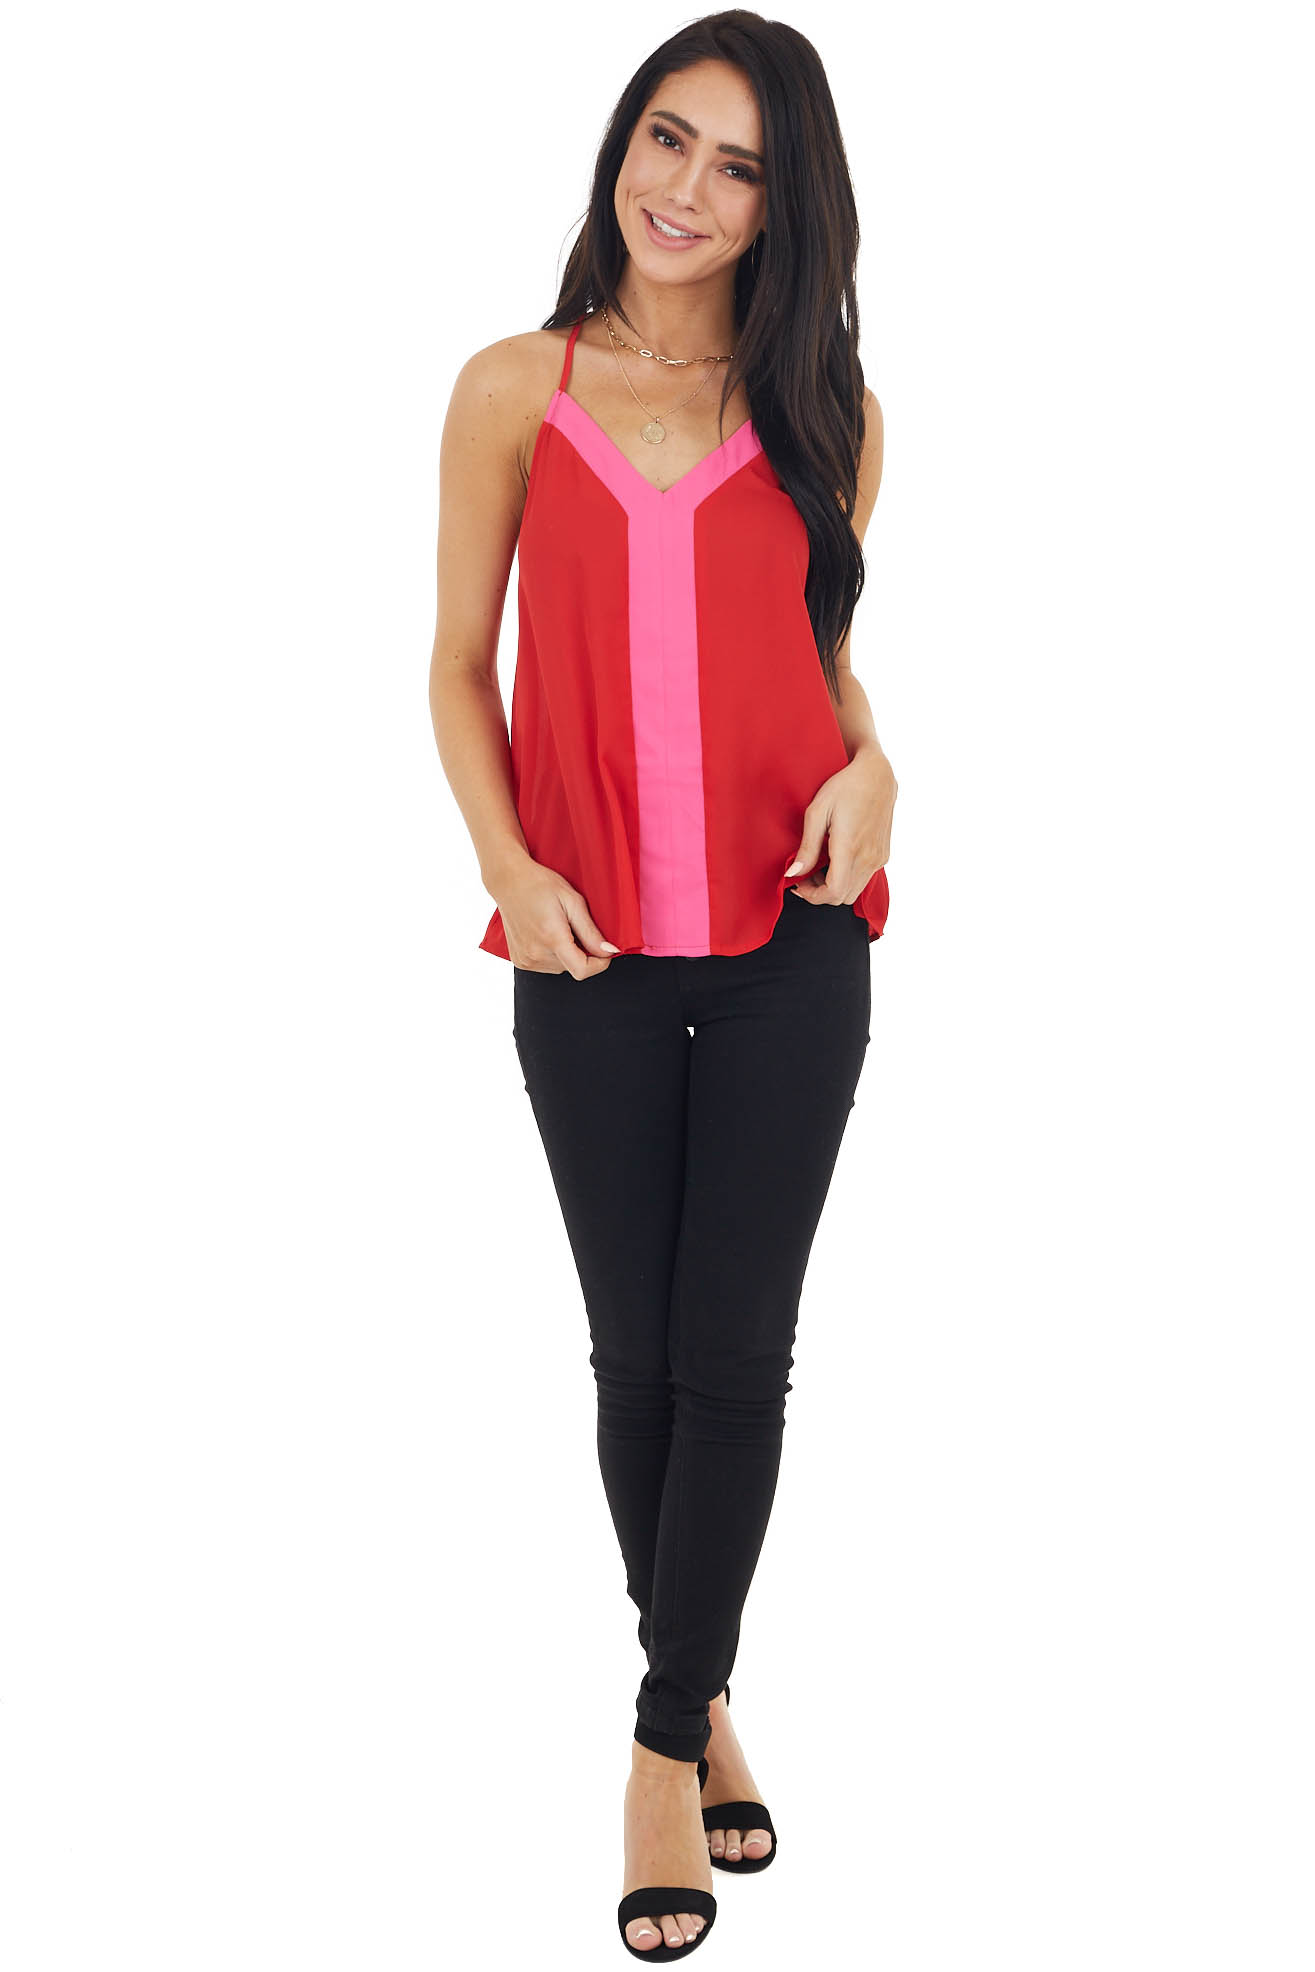 Lipstick Red Sleeveless Top with Hot Pink Contrast Detail